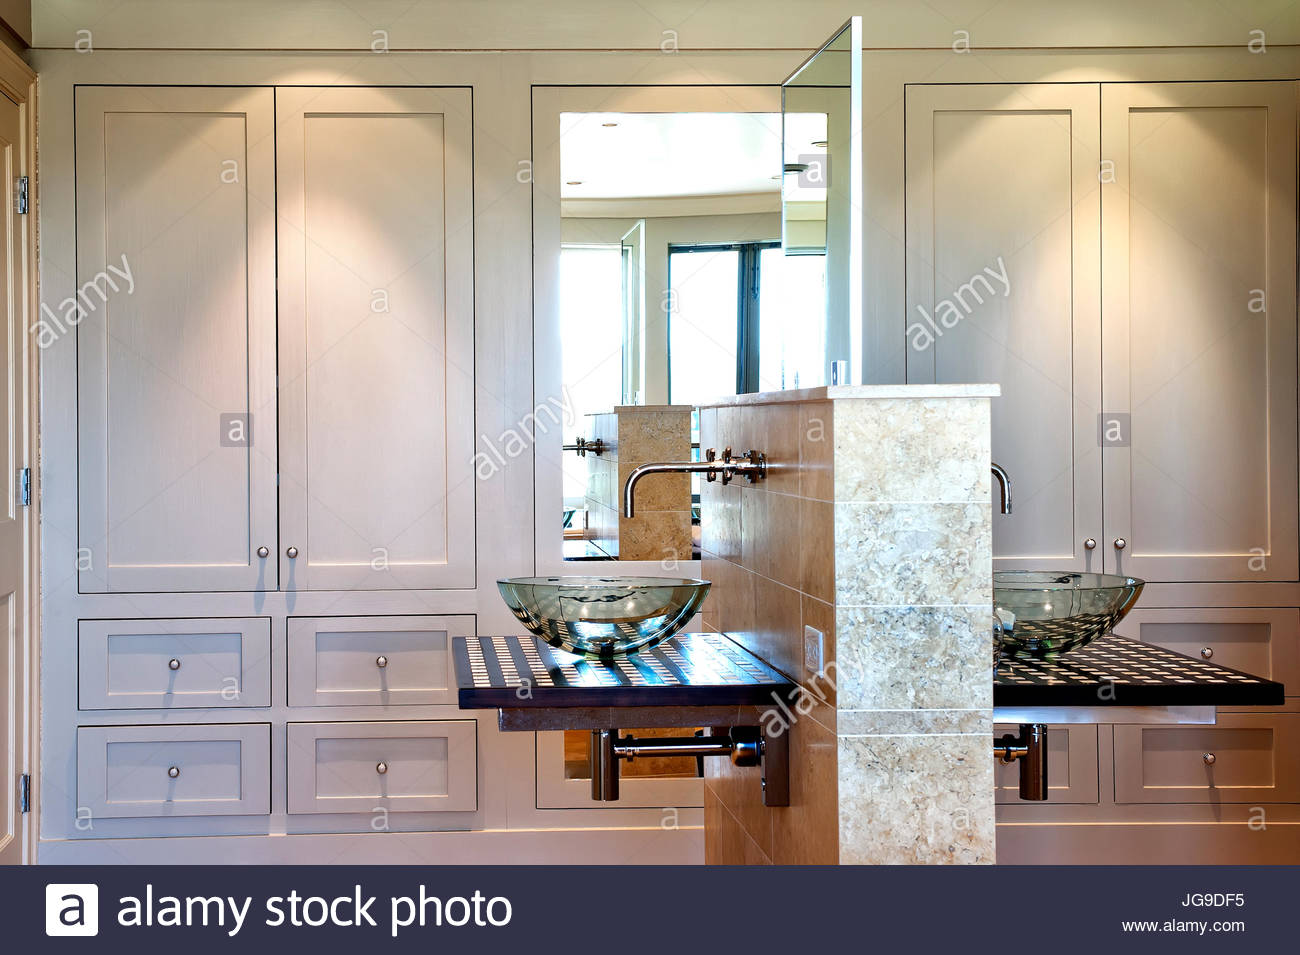 Large bathroom 2 glass vessel sinks back to back custom storage closets and drawers & Large bathroom 2 glass vessel sinks back to back custom storage ...